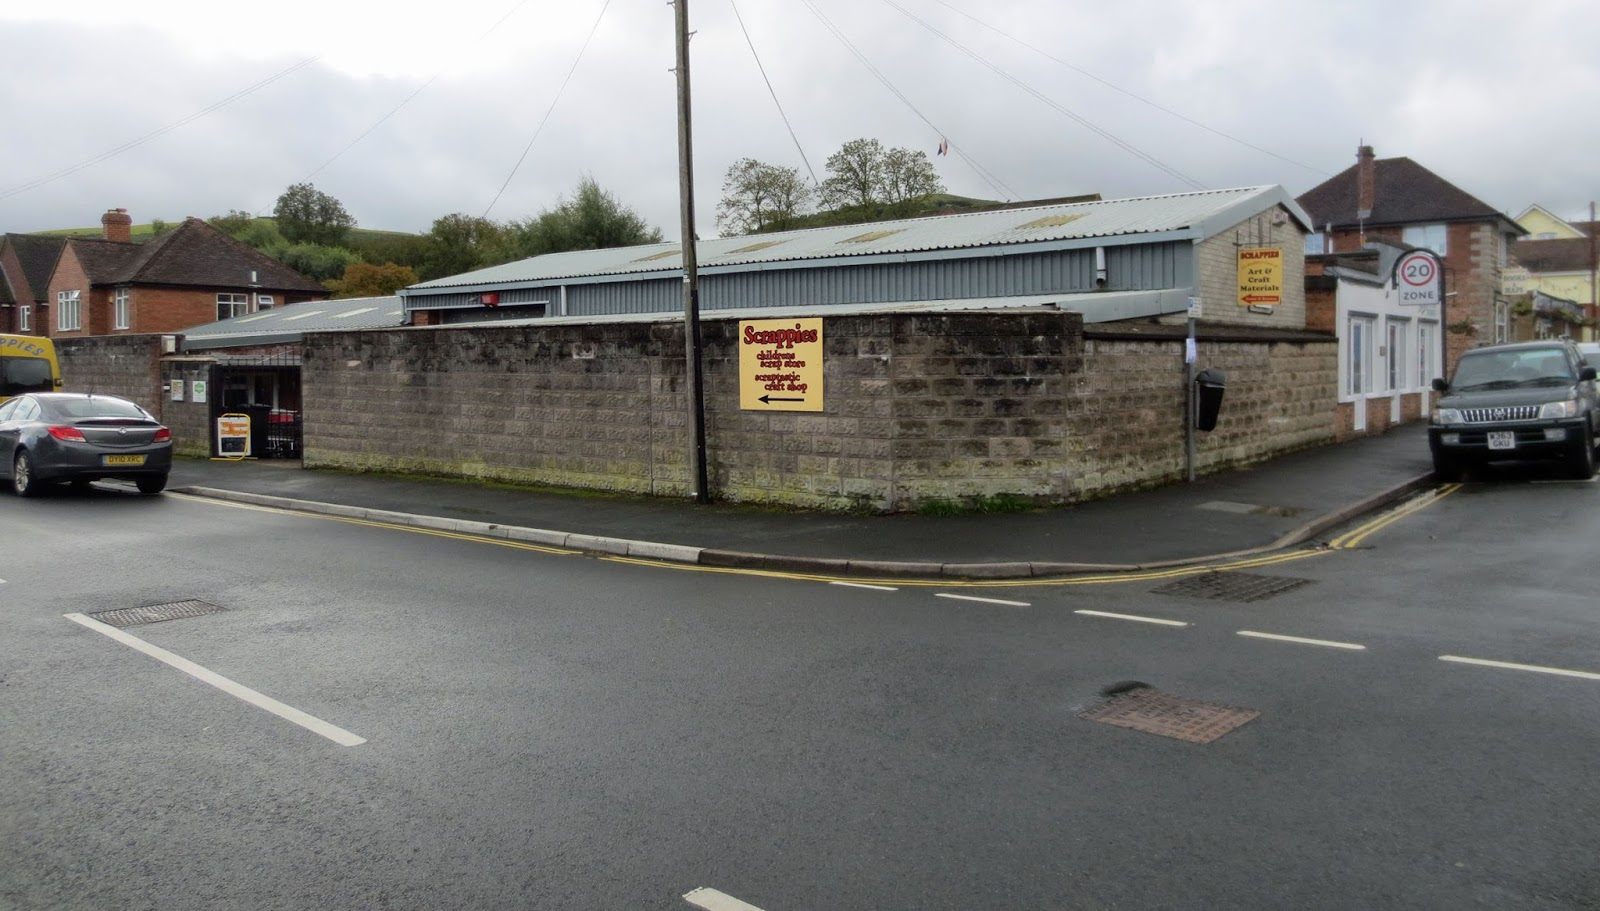 new jobs coming to church stretton as national retailer set to new jobs coming to church stretton as national retailer set to open in 2017